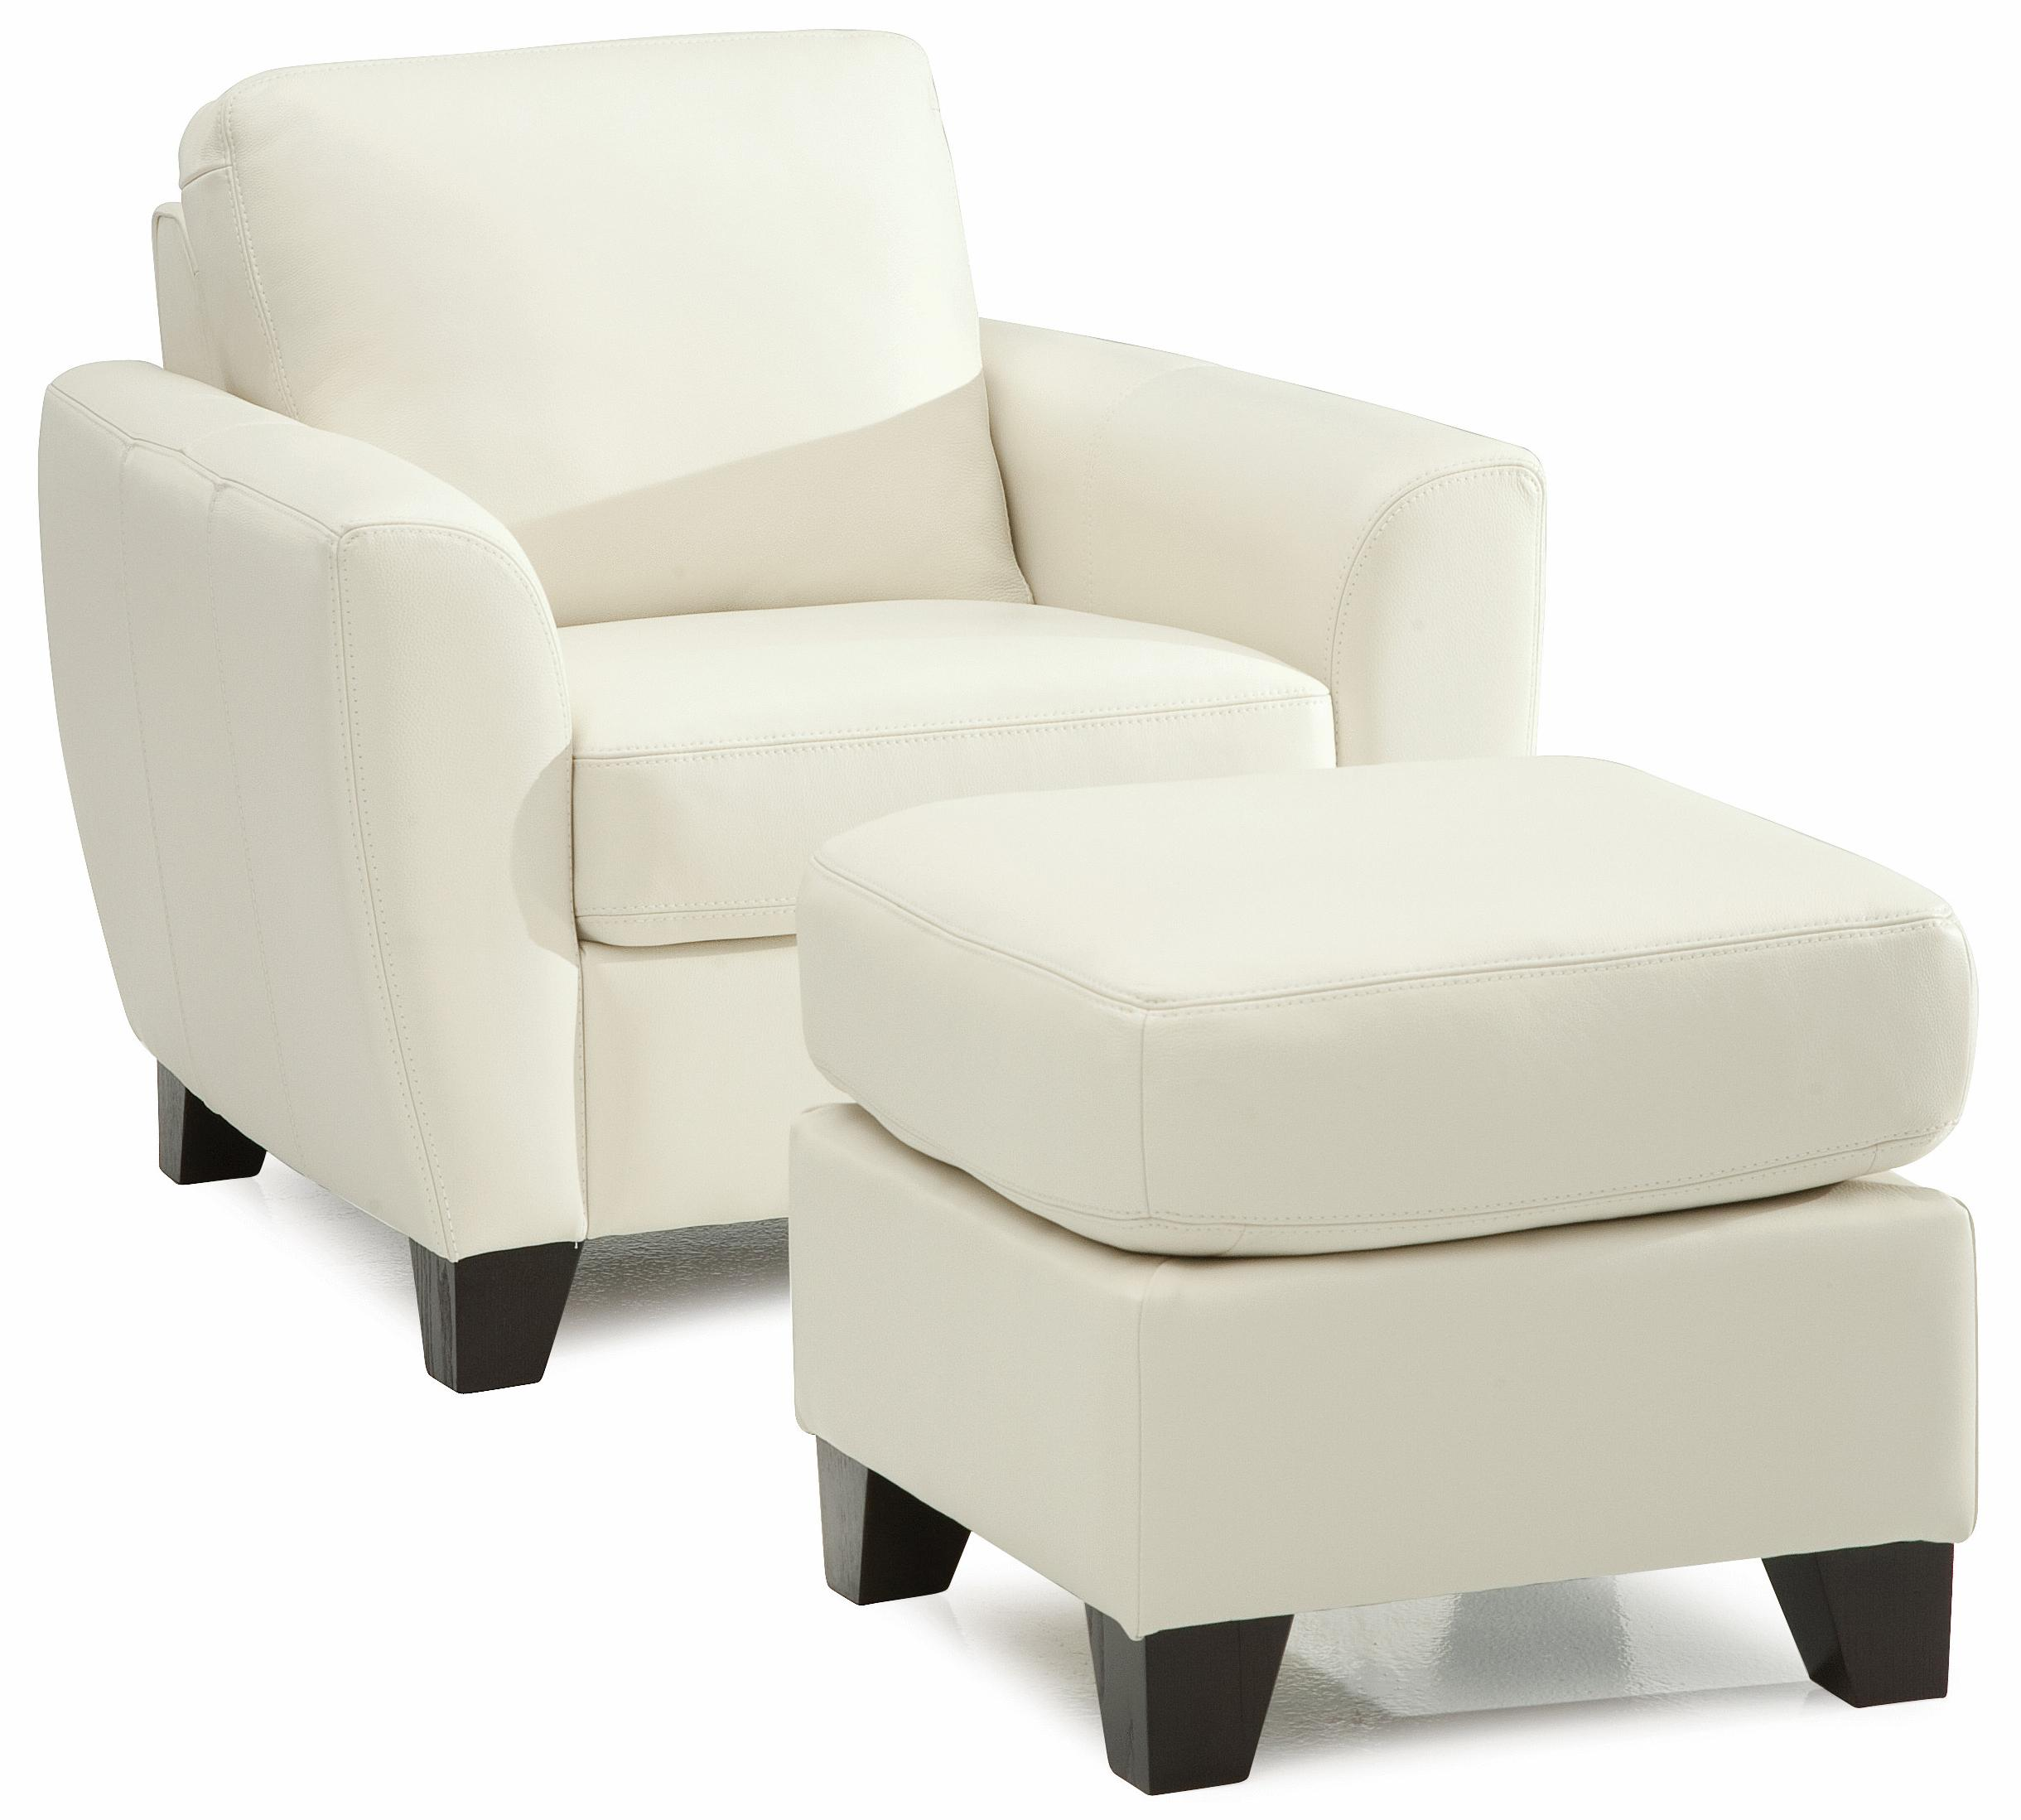 Palliser Marymount Chair and Ottoman - Item Number: 77332-02+04